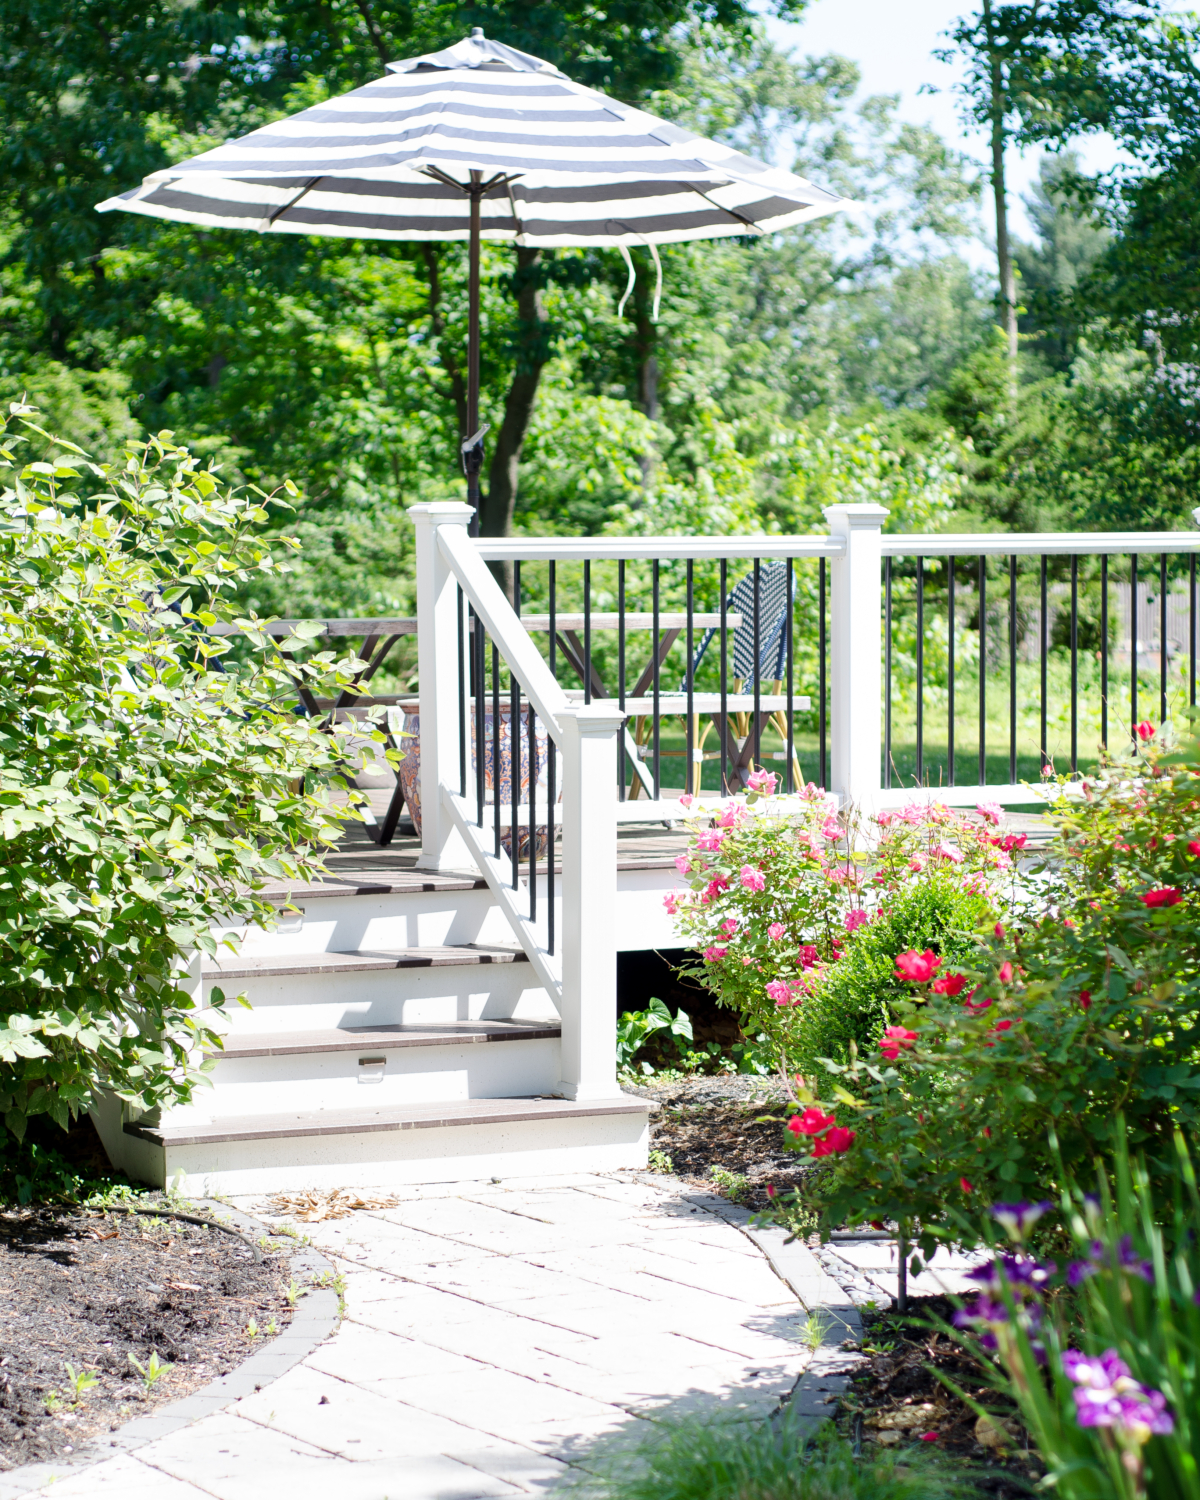 Gorgeous deck space with lush plantings, dining space, and lounge chairs.